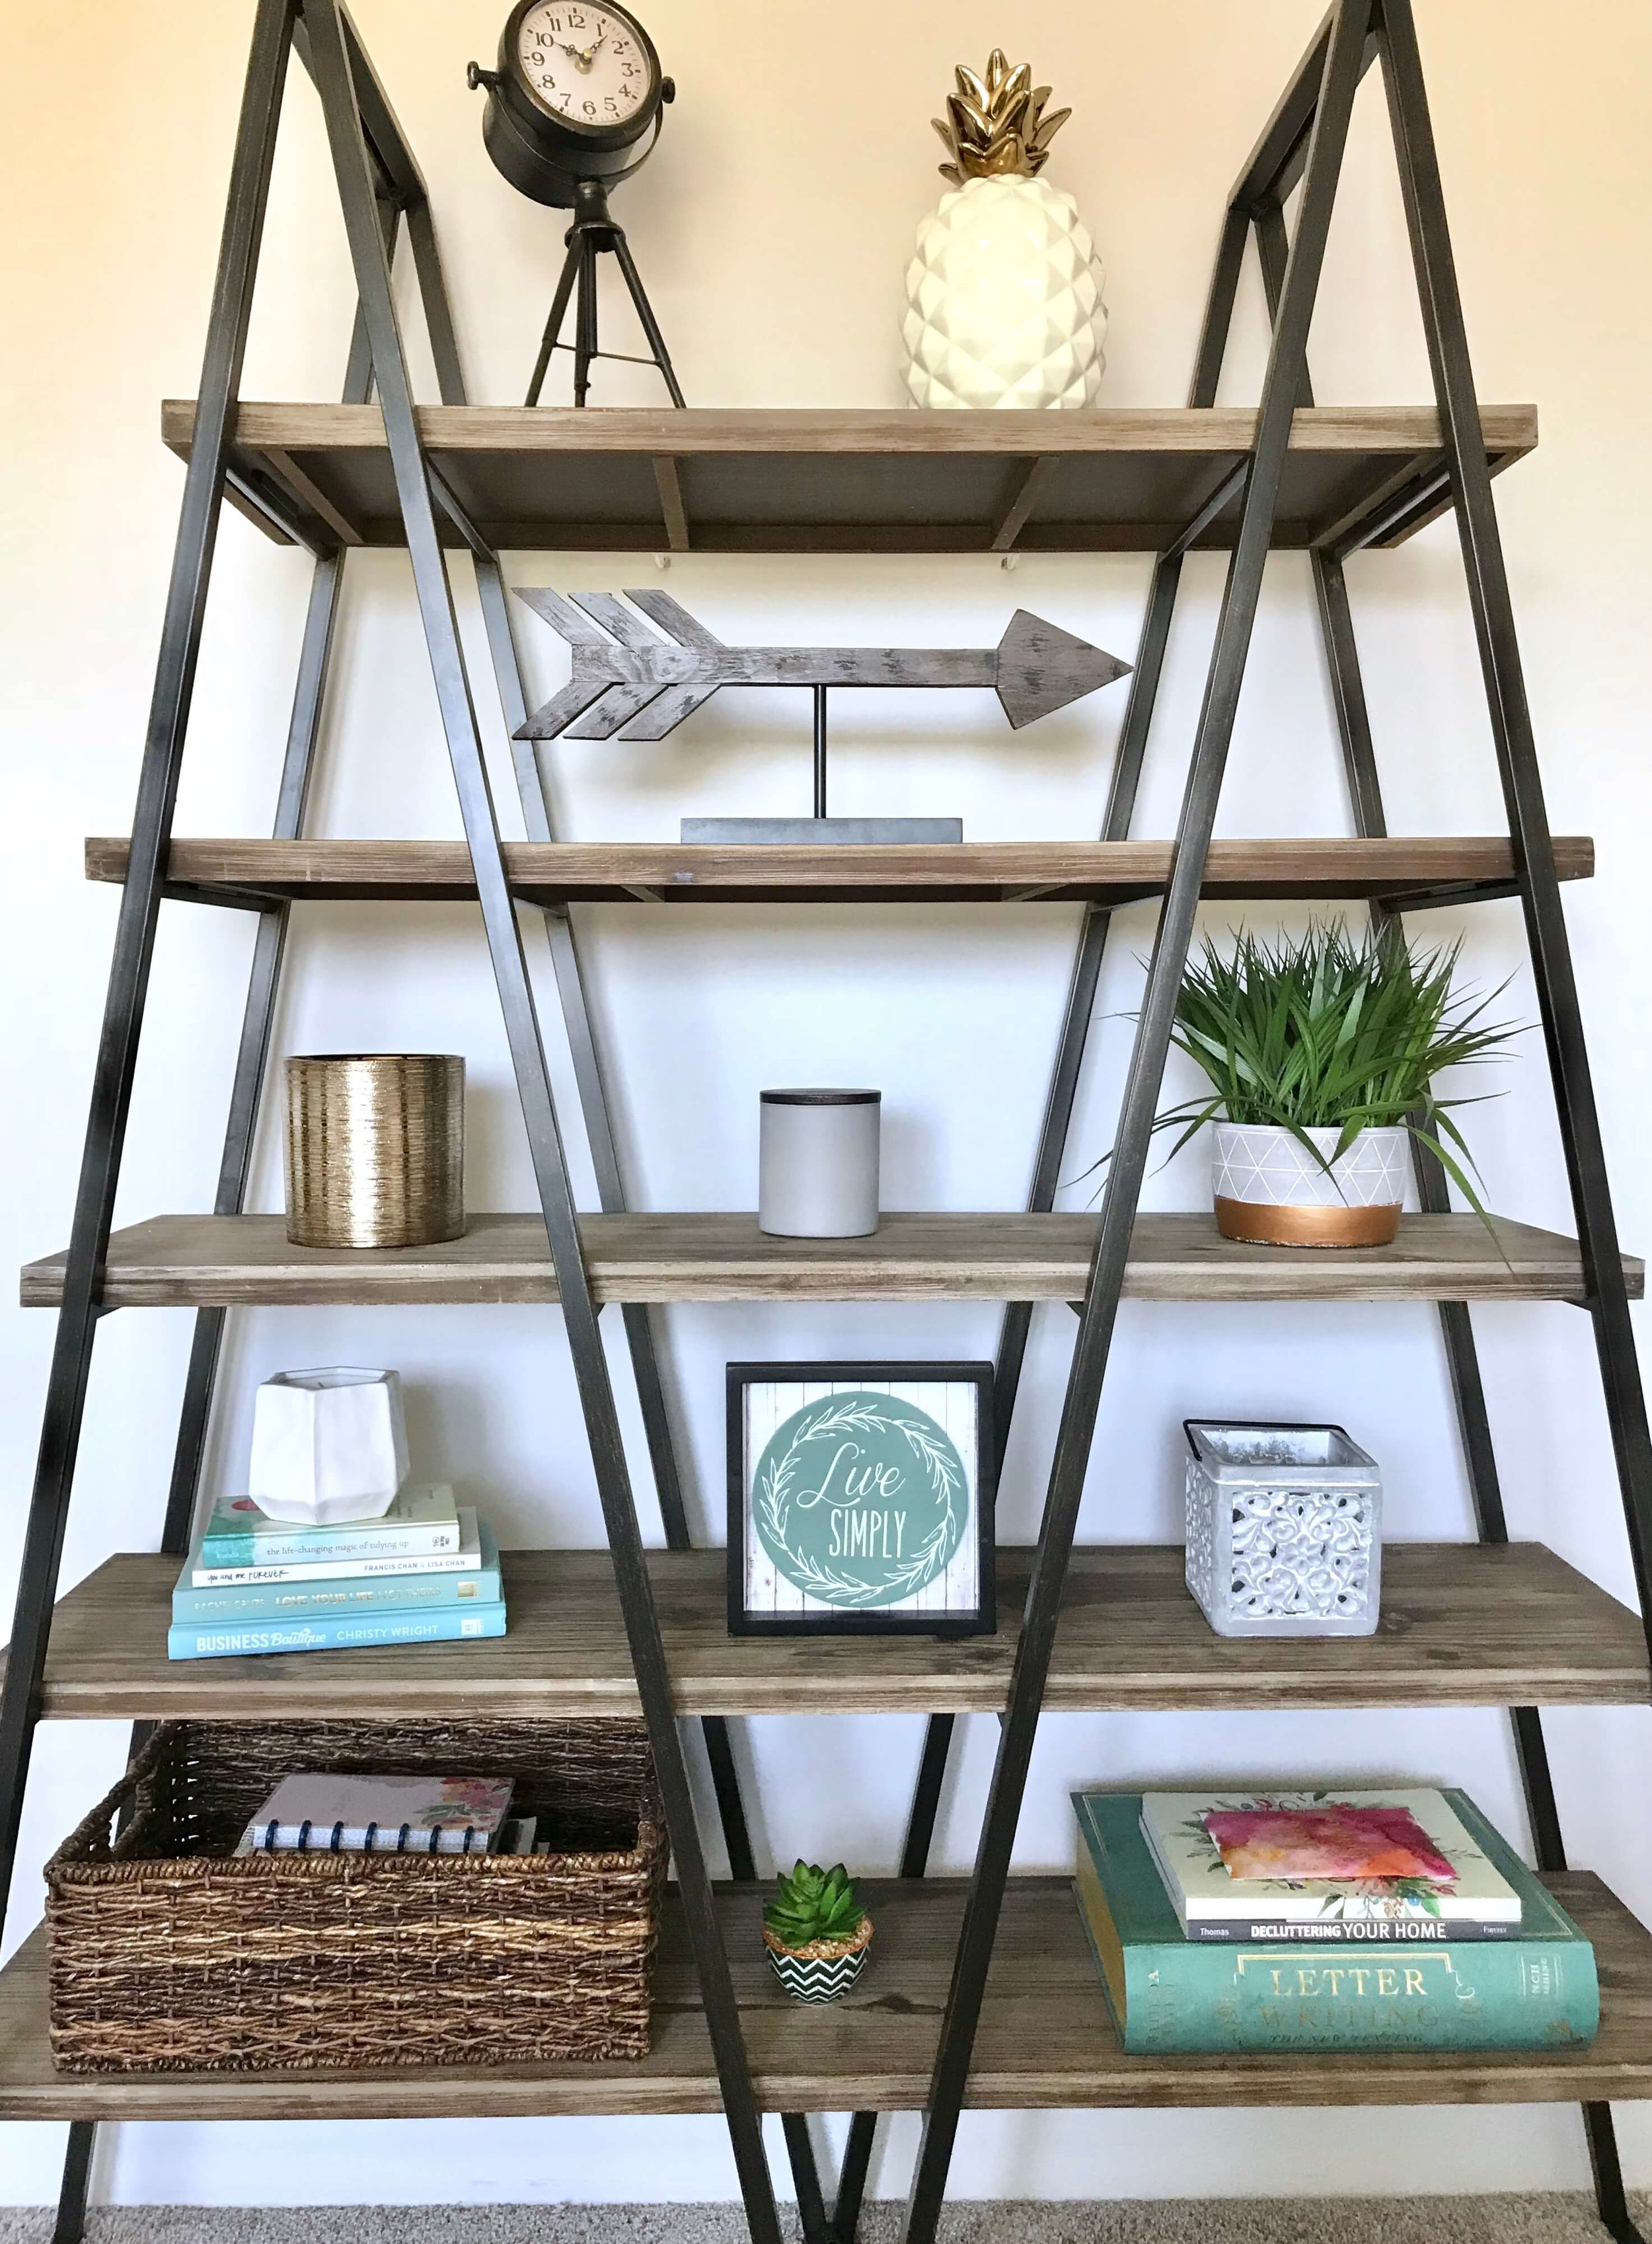 A balanced bookshelf is all about textures and interest.